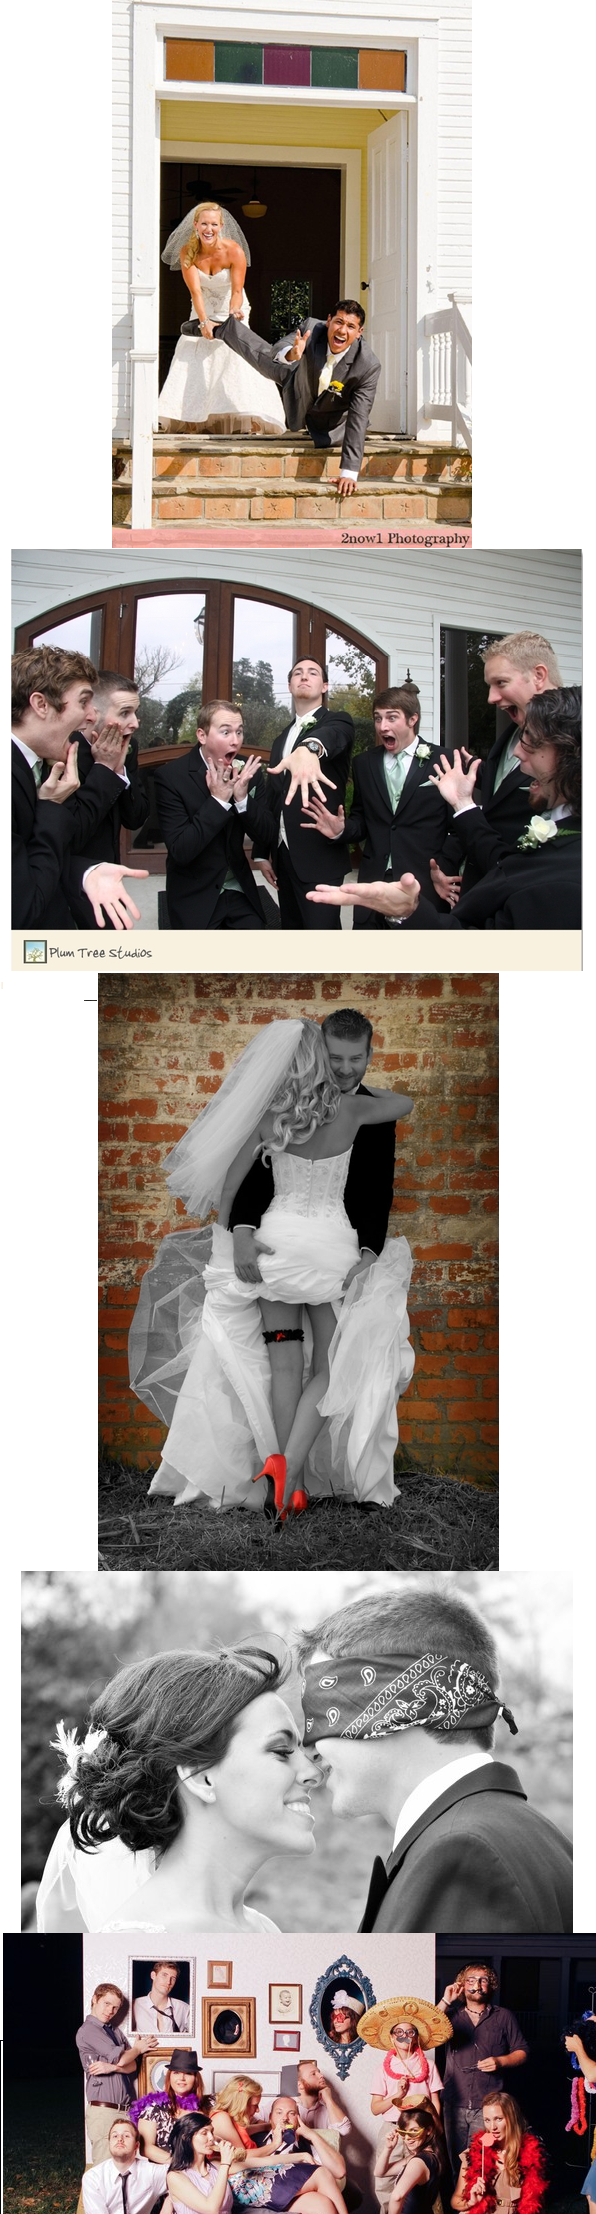 Love the photo of the groomsmen freaking out over the ring.